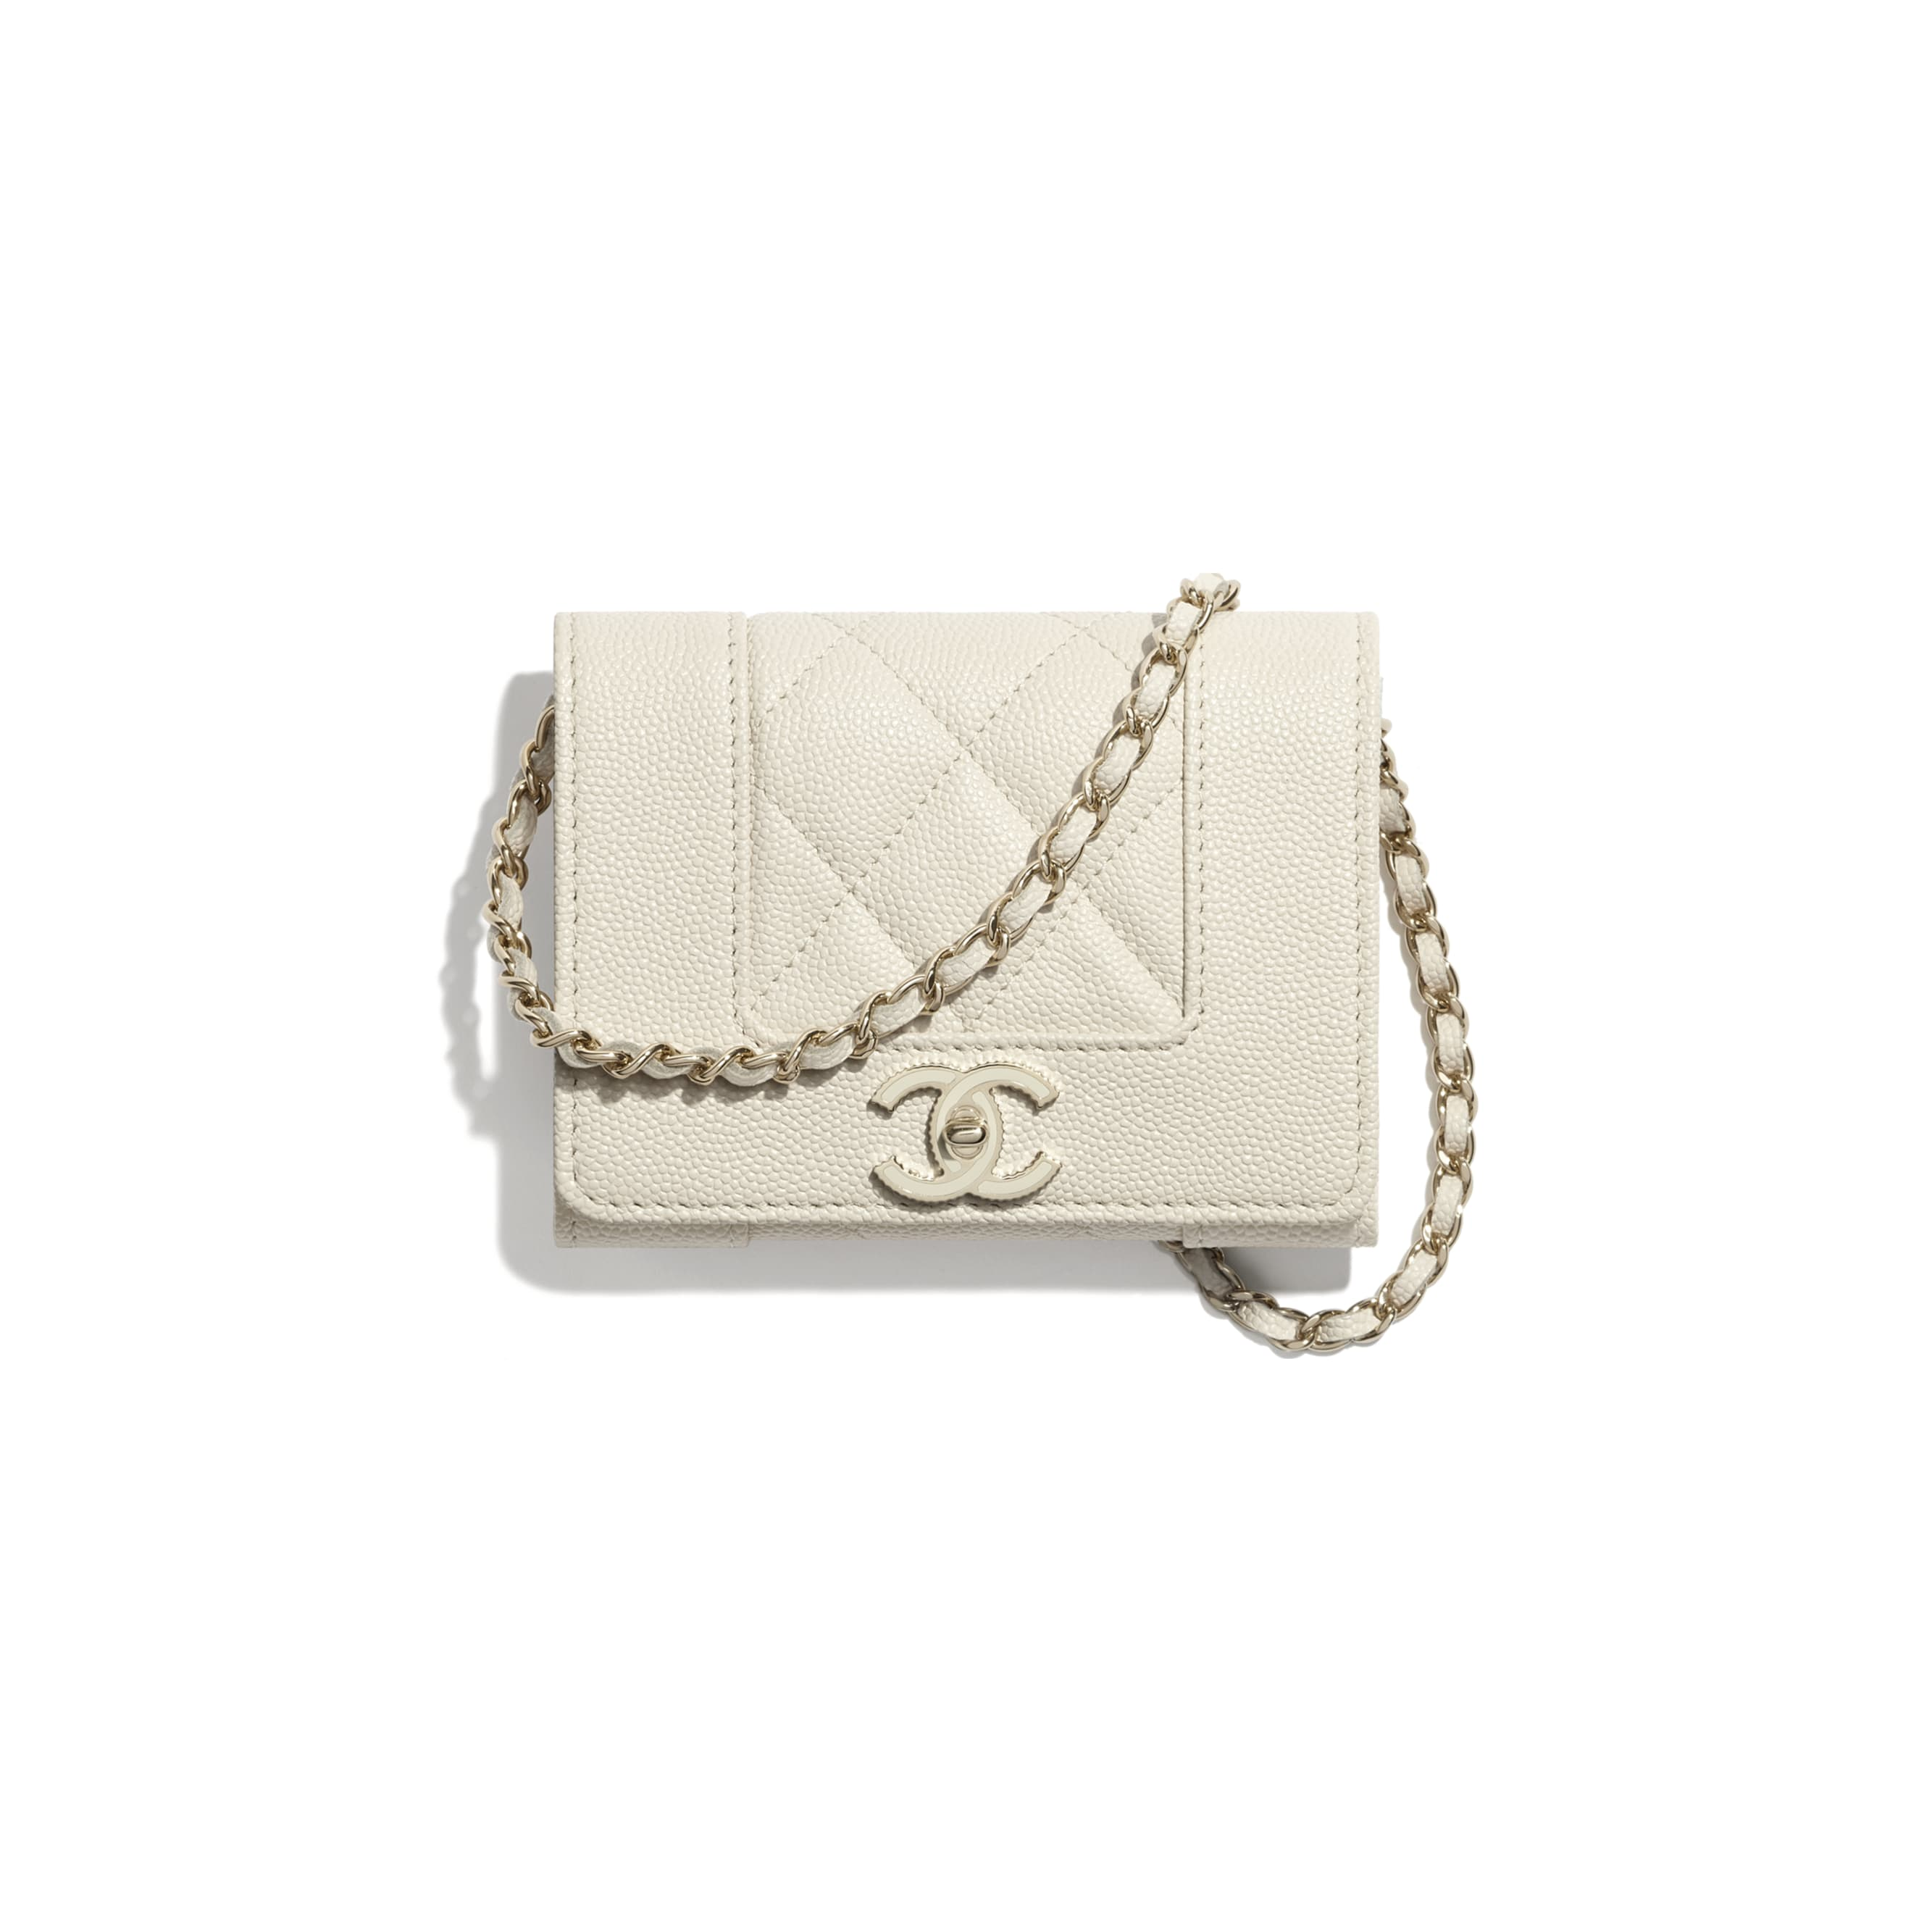 Flap Coin Purse with Chain - Ecru - Grained Lambskin, Lacquered & Gold-Tone Metal - CHANEL - Default view - see standard sized version